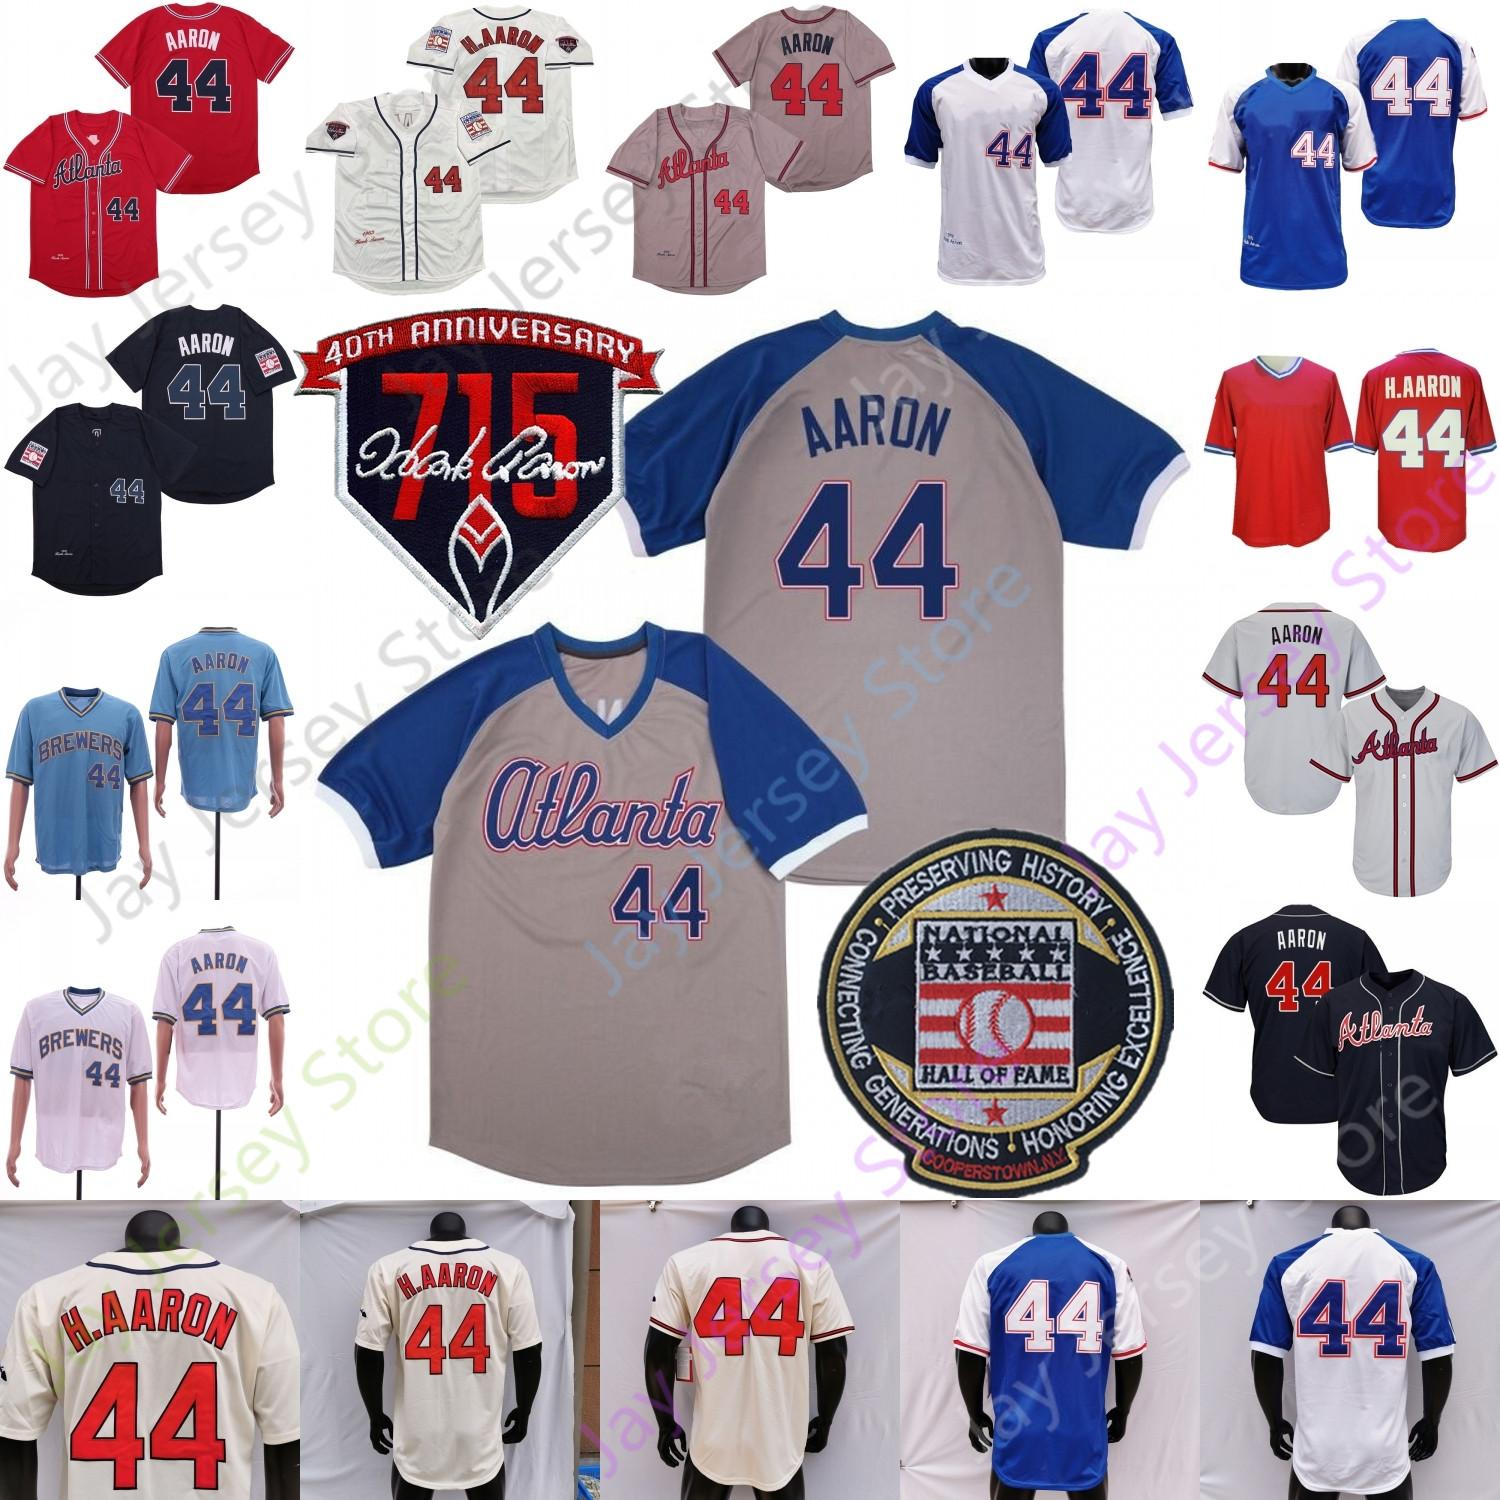 Hank Aaron Jersey Retro Baseball 1963 1974 Hall of Fame 715 Patch Zipper Pullover Button Home Away Bianco Red Cream Blue